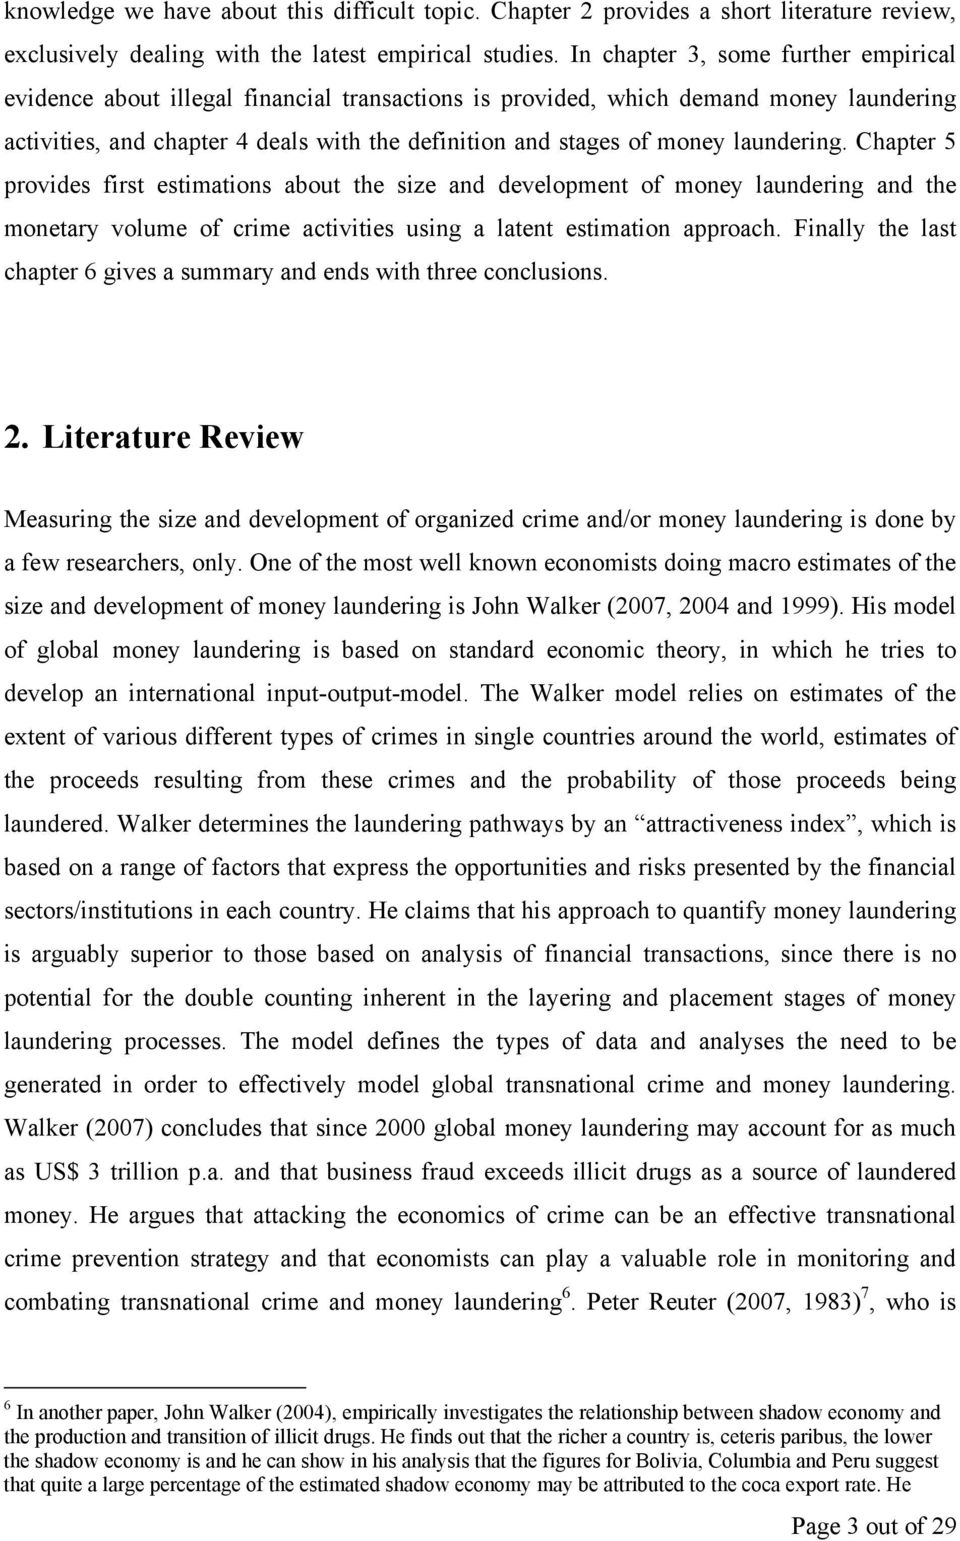 laundering. Chapter 5 provides first estimations about the size and development of money laundering and the monetary volume of crime activities using a latent estimation approach.